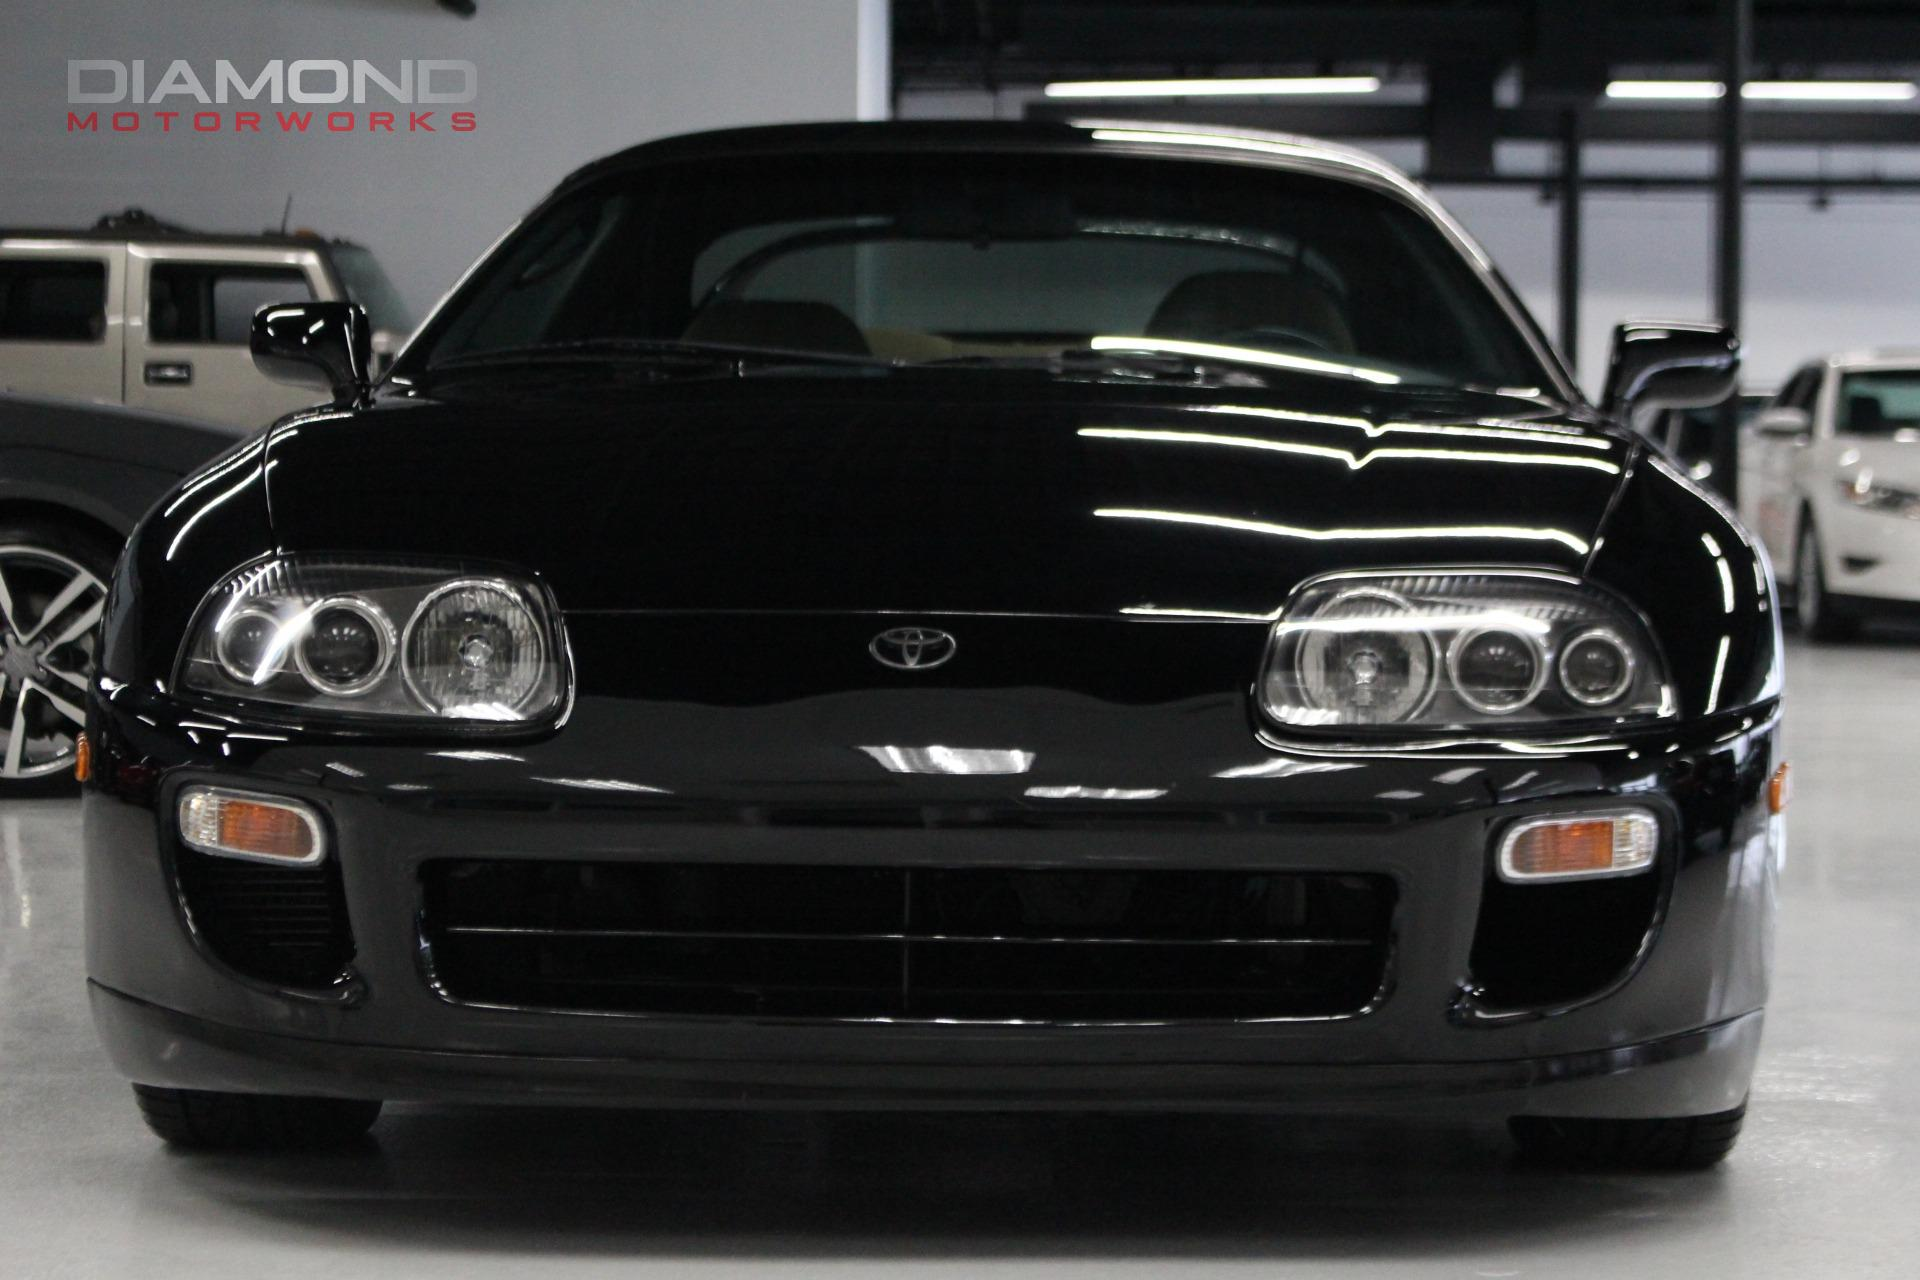 Toyota Certified Pre Owned >> 1998 Toyota Supra Twin Turbo Stock # 002966 for sale near ...